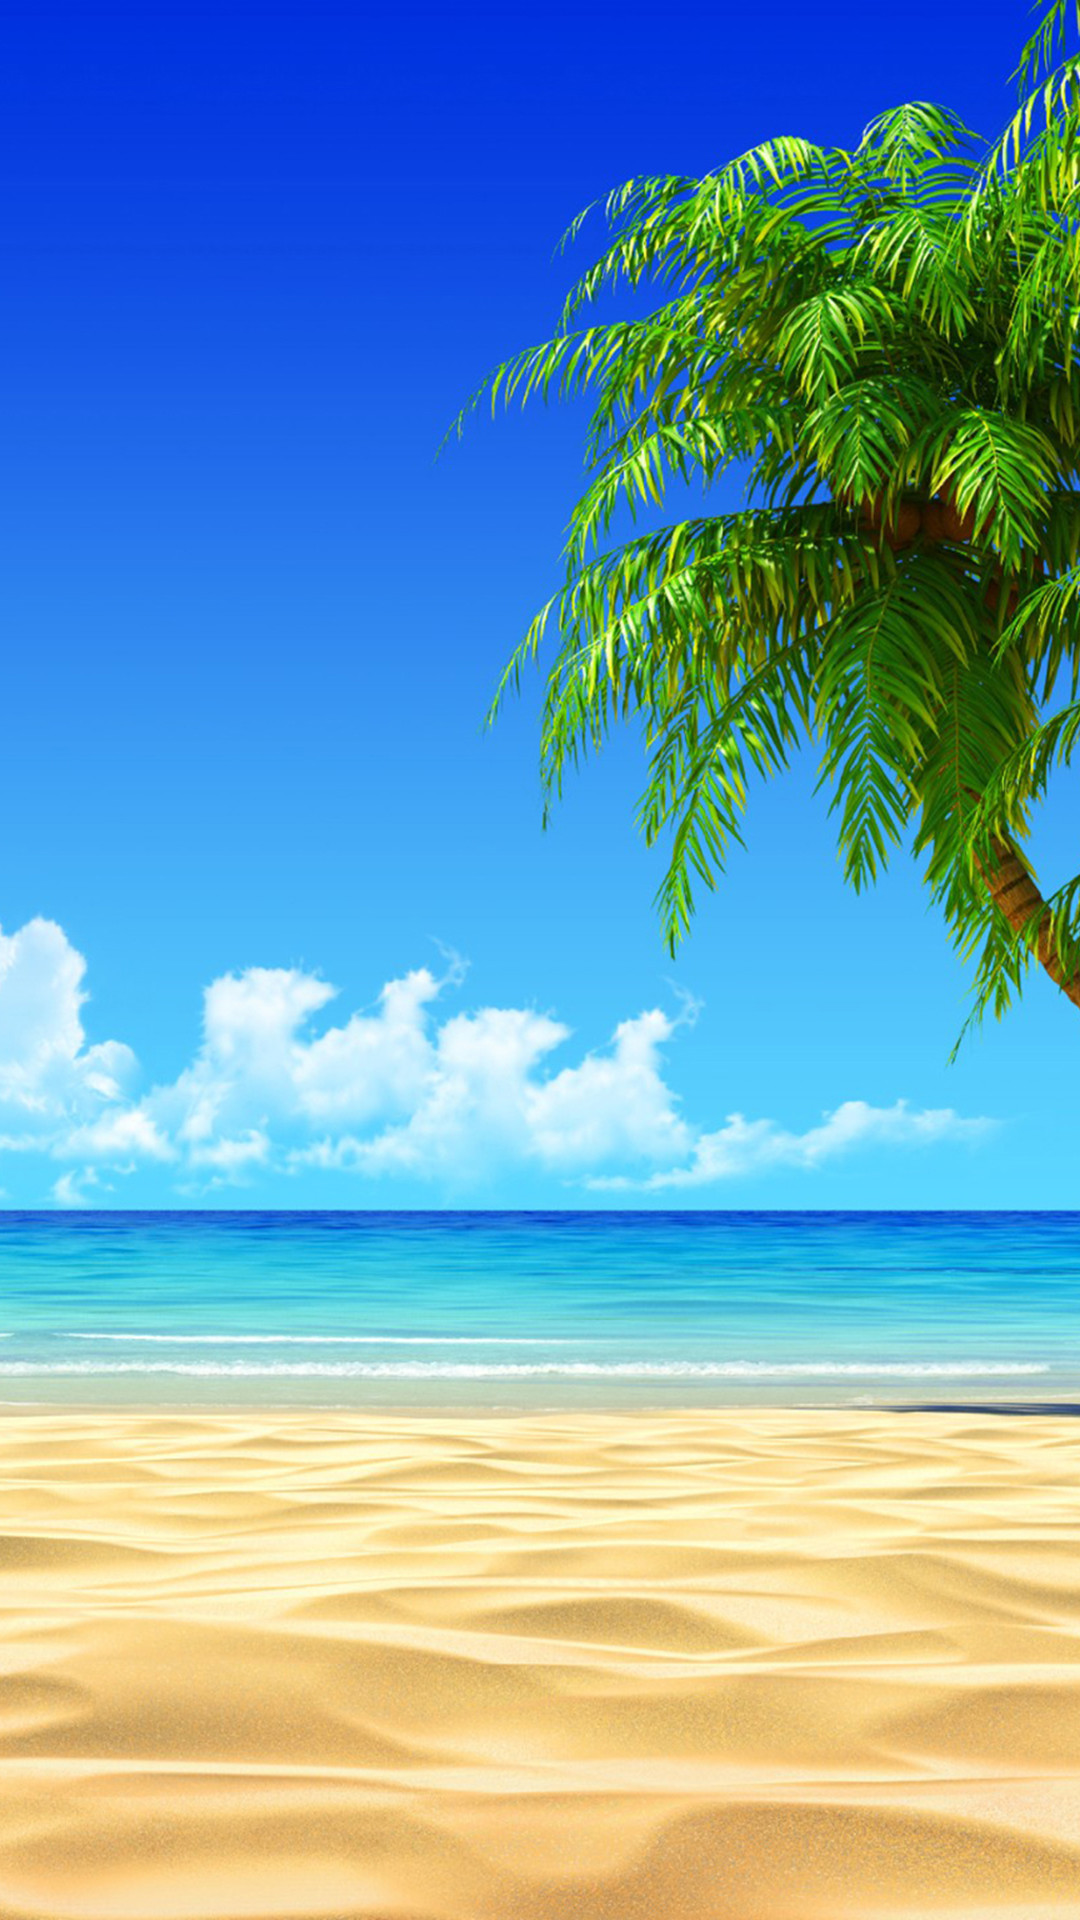 Beach Images Wallpaper 78 Images